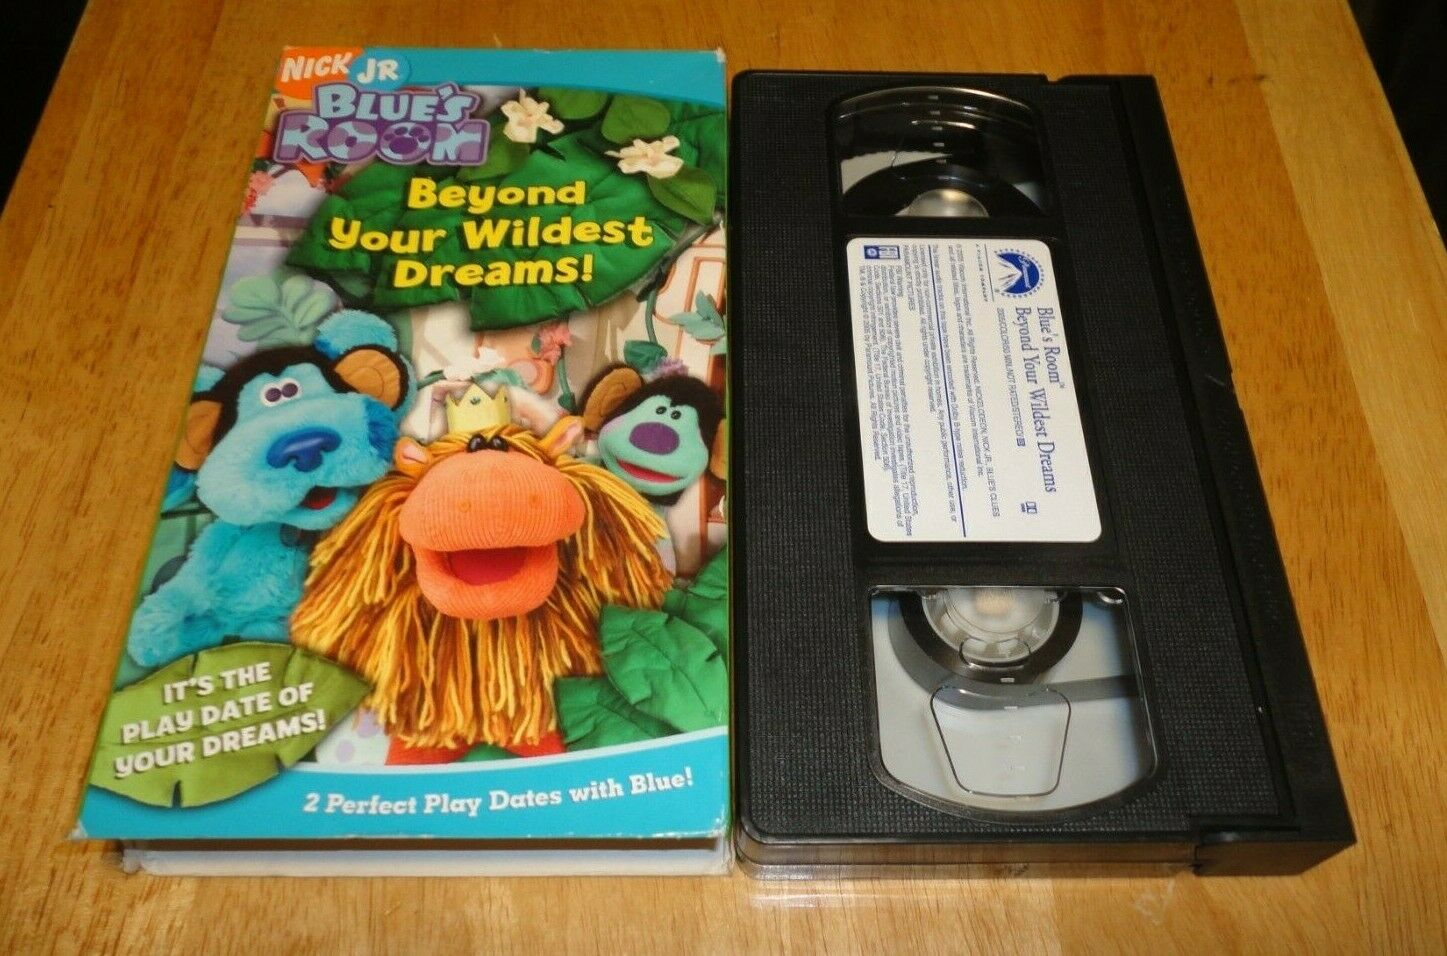 Blue's Room: Beyond the Wildest Dreams! (2005 VHS)